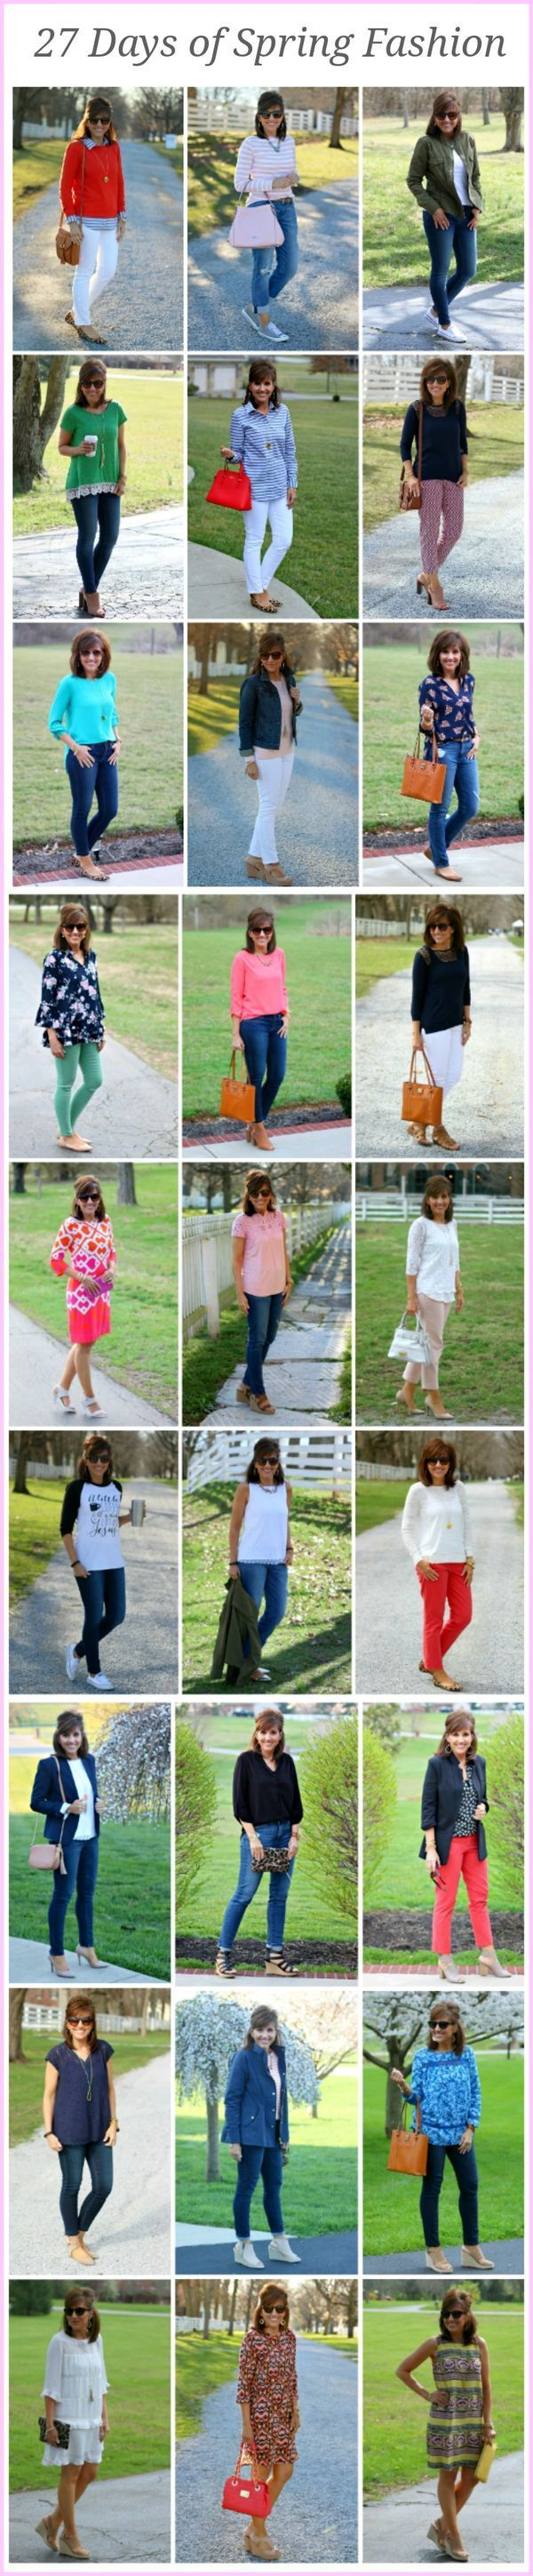 Out of ideas for your summer wardrobe? Try one of these outfits from this 27 Days of Spring Fashion 2016 Recap. Dresses, pants, shirts, shoes--all kinds of style you should get into your life!